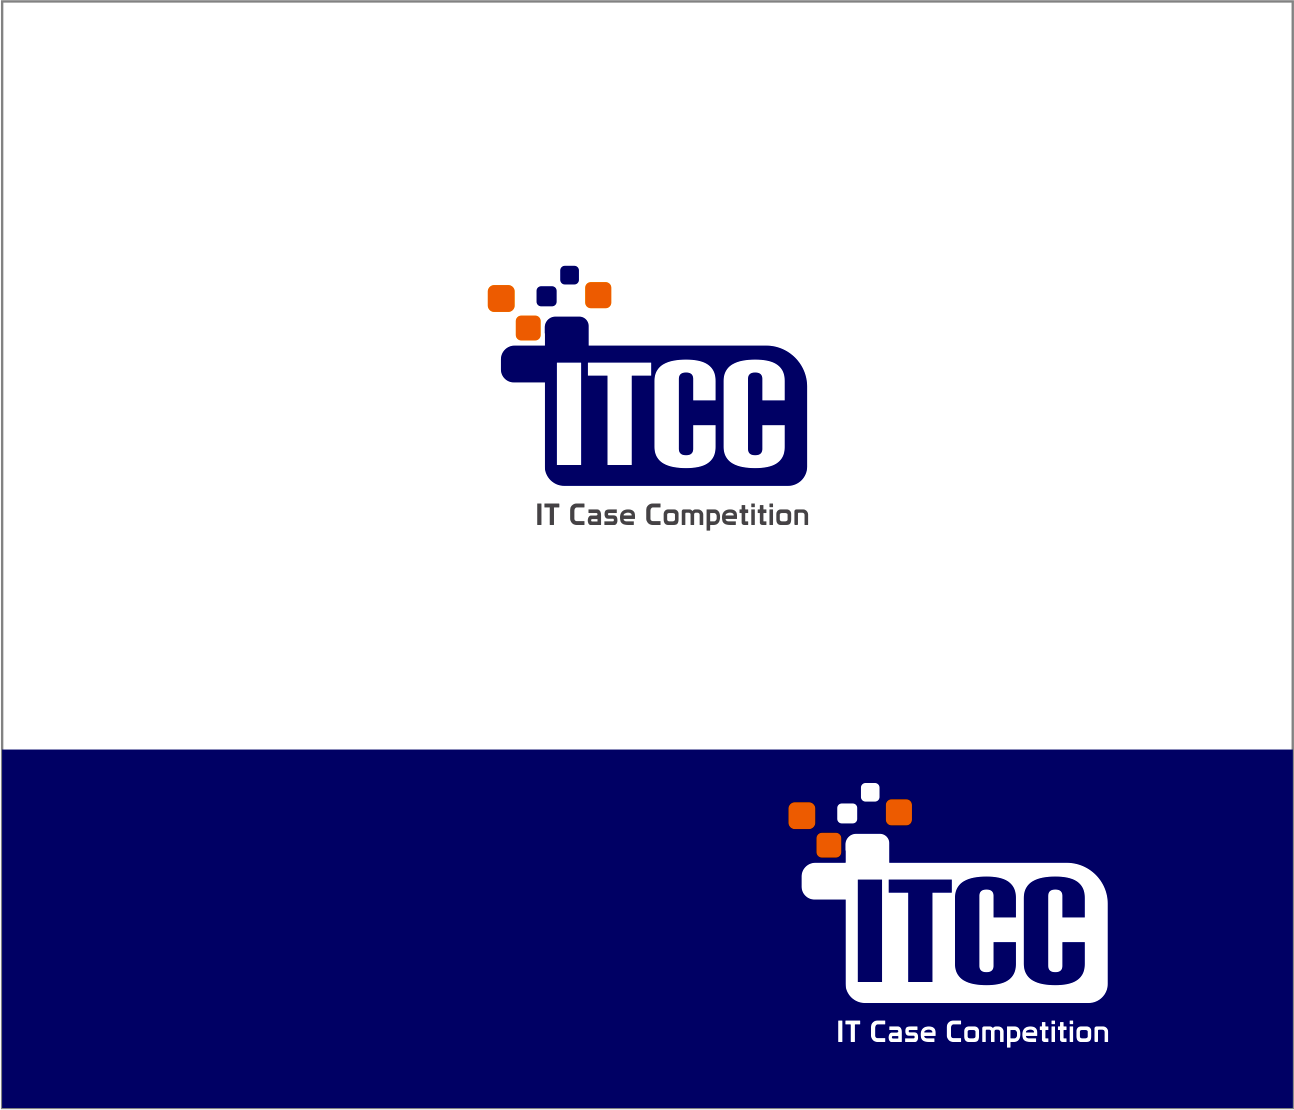 Logo Design by Armada Jamaluddin - Entry No. 41 in the Logo Design Contest Inspiring Logo Design for ITCC.